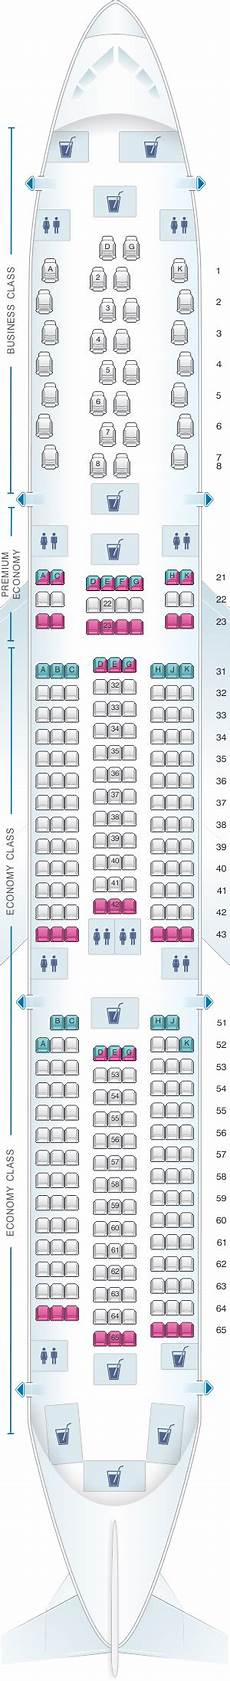 Airbus A350 900 Seating Chart Seat Map Philippine Airlines Airbus A350 900 Seatmaestro